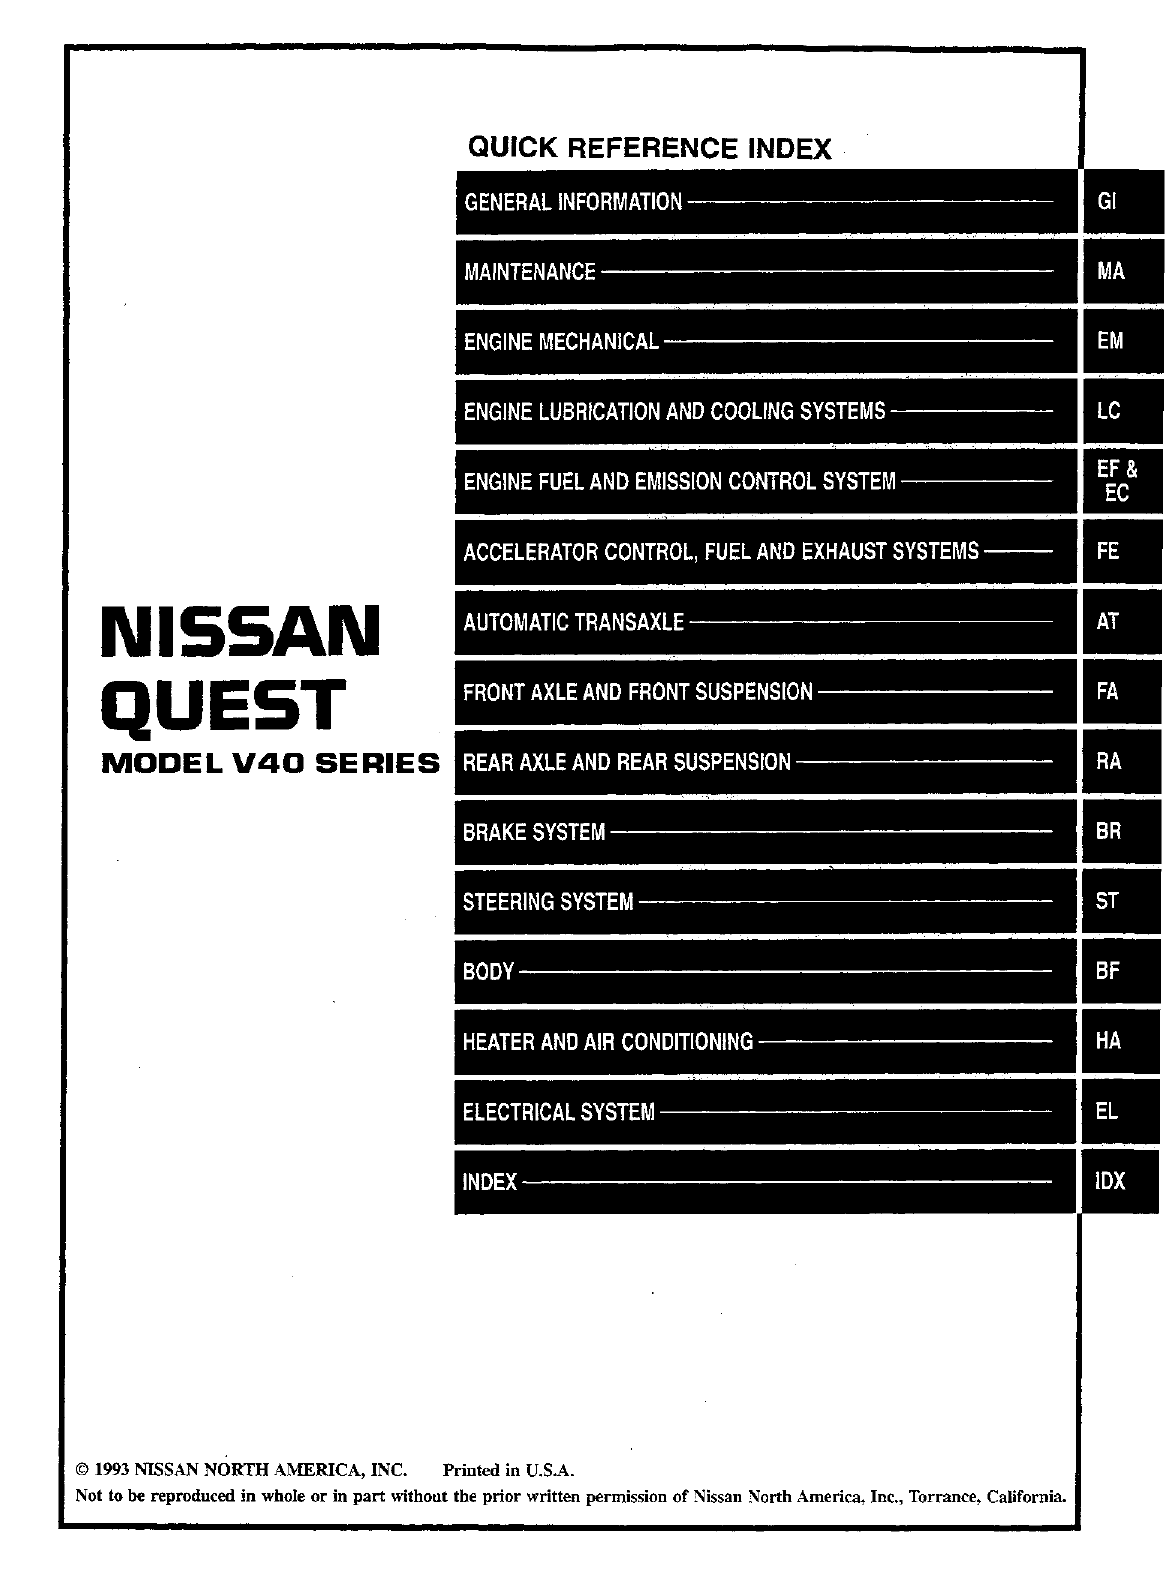 See our other Nissan Quest Manuals: